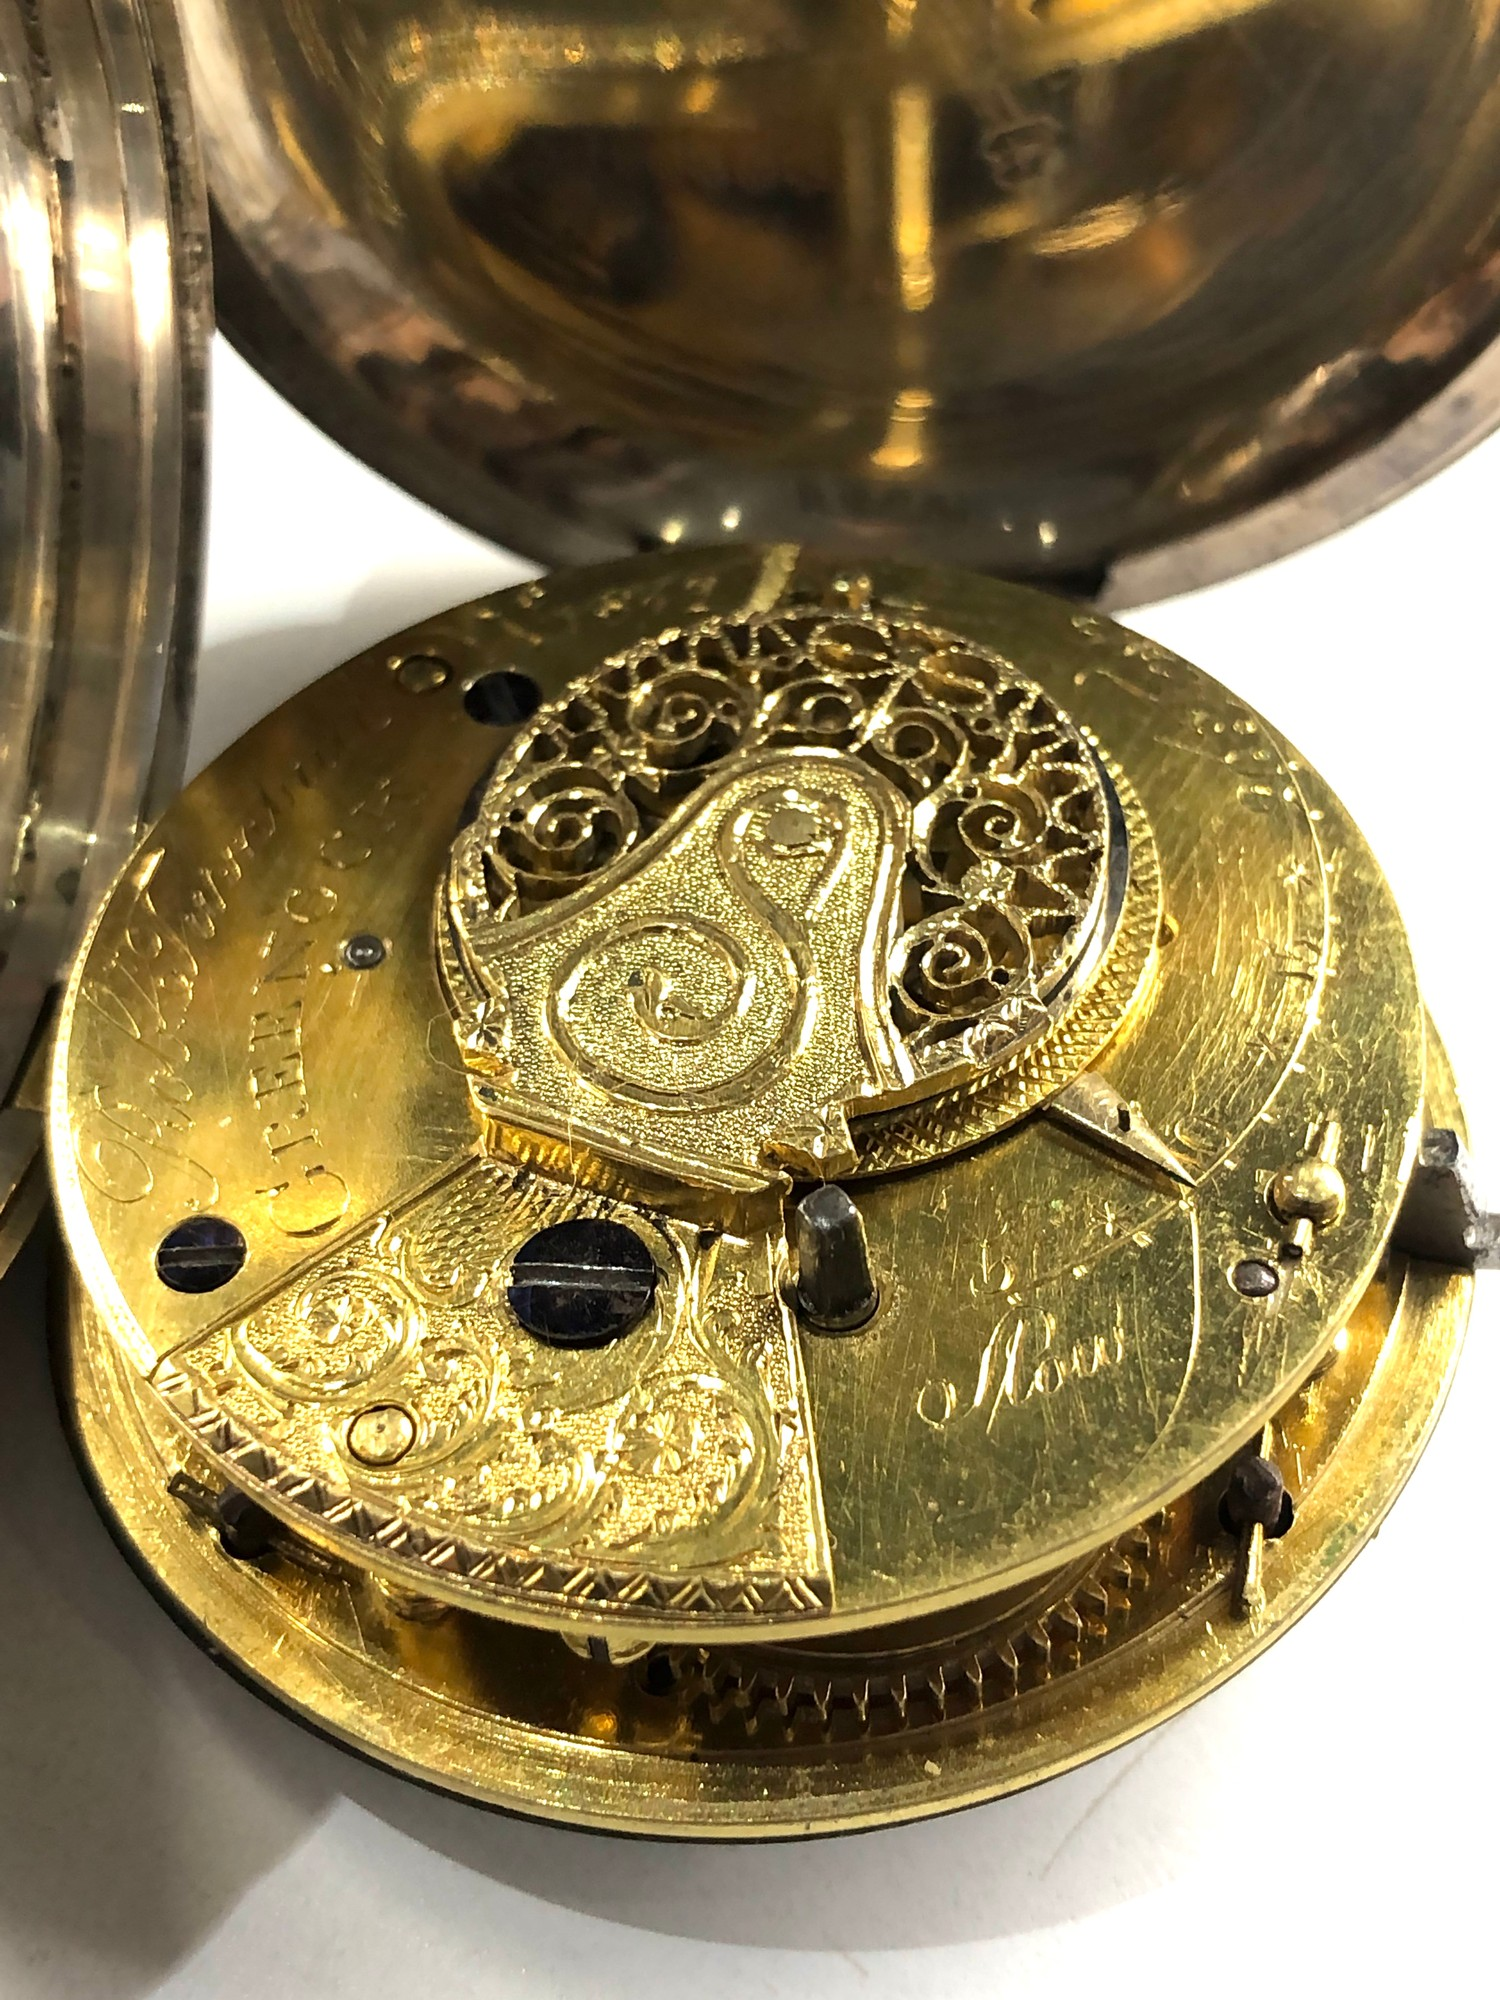 Fine antique silver full hunter case verge fusee pocket watch by Rob Turnball Greenock watch is in - Image 4 of 9